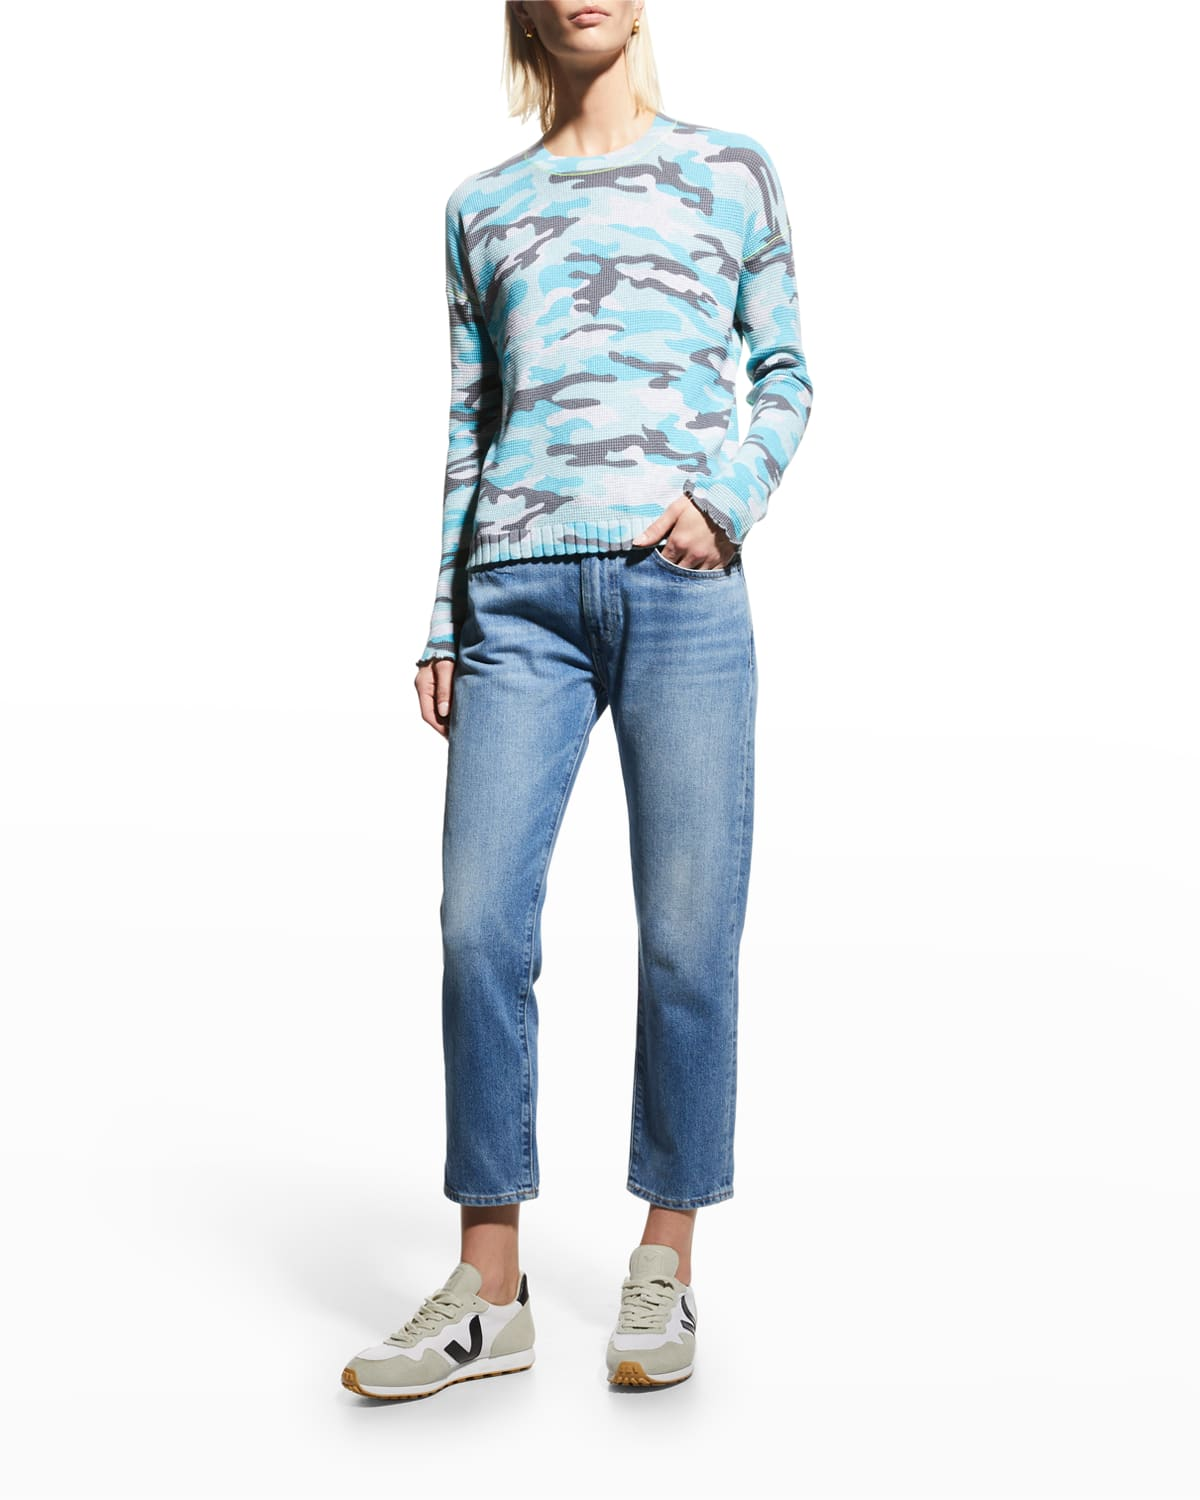 Out of Sight Camo Sweater